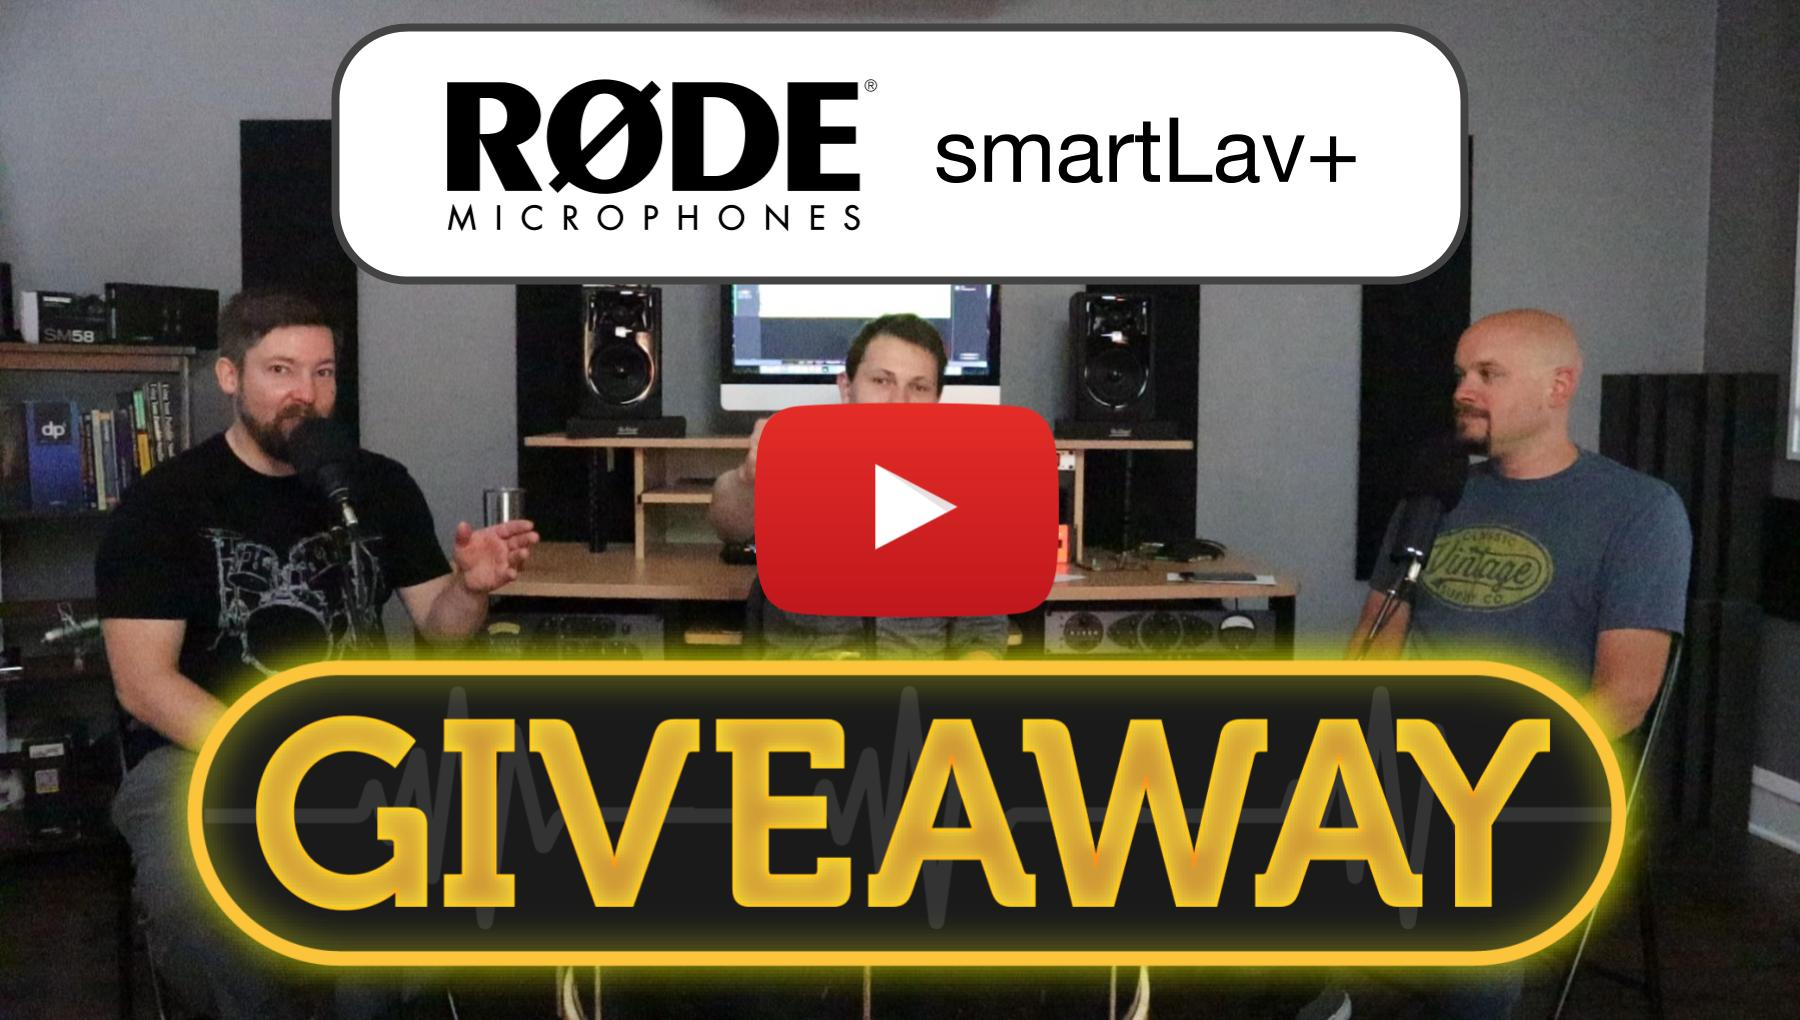 PPA Unfiltered - RODE SmarLav+ Giveaway!